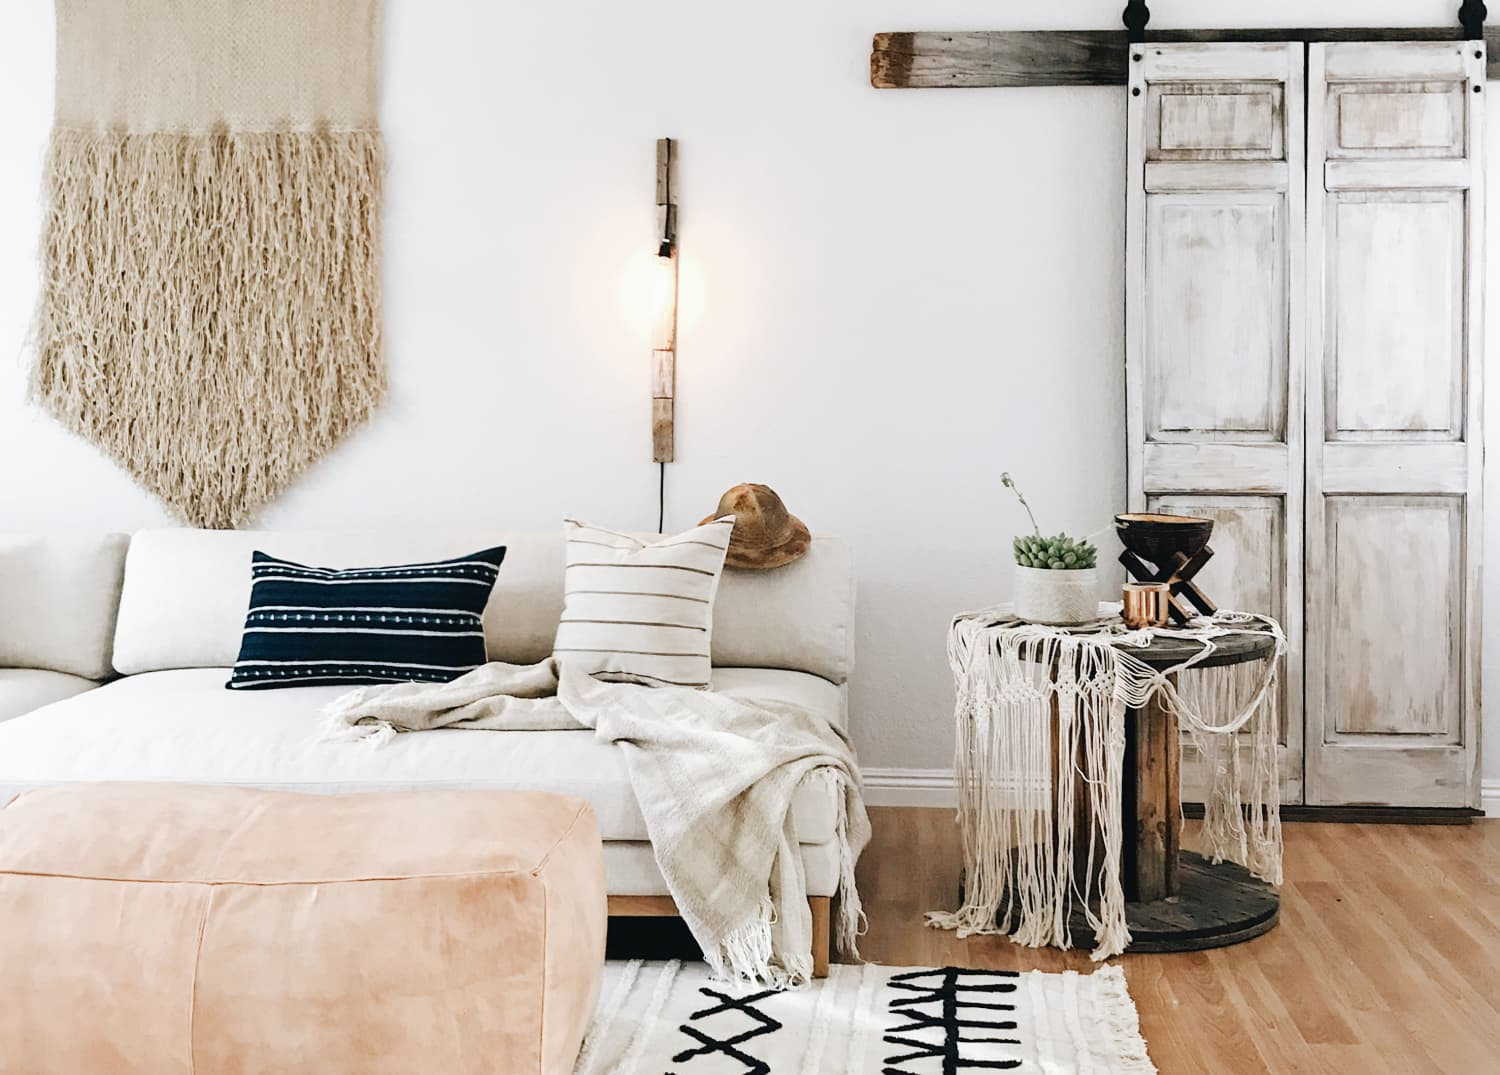 A Rustic California Home Is Filled with Rescued and Reclaimed Decor